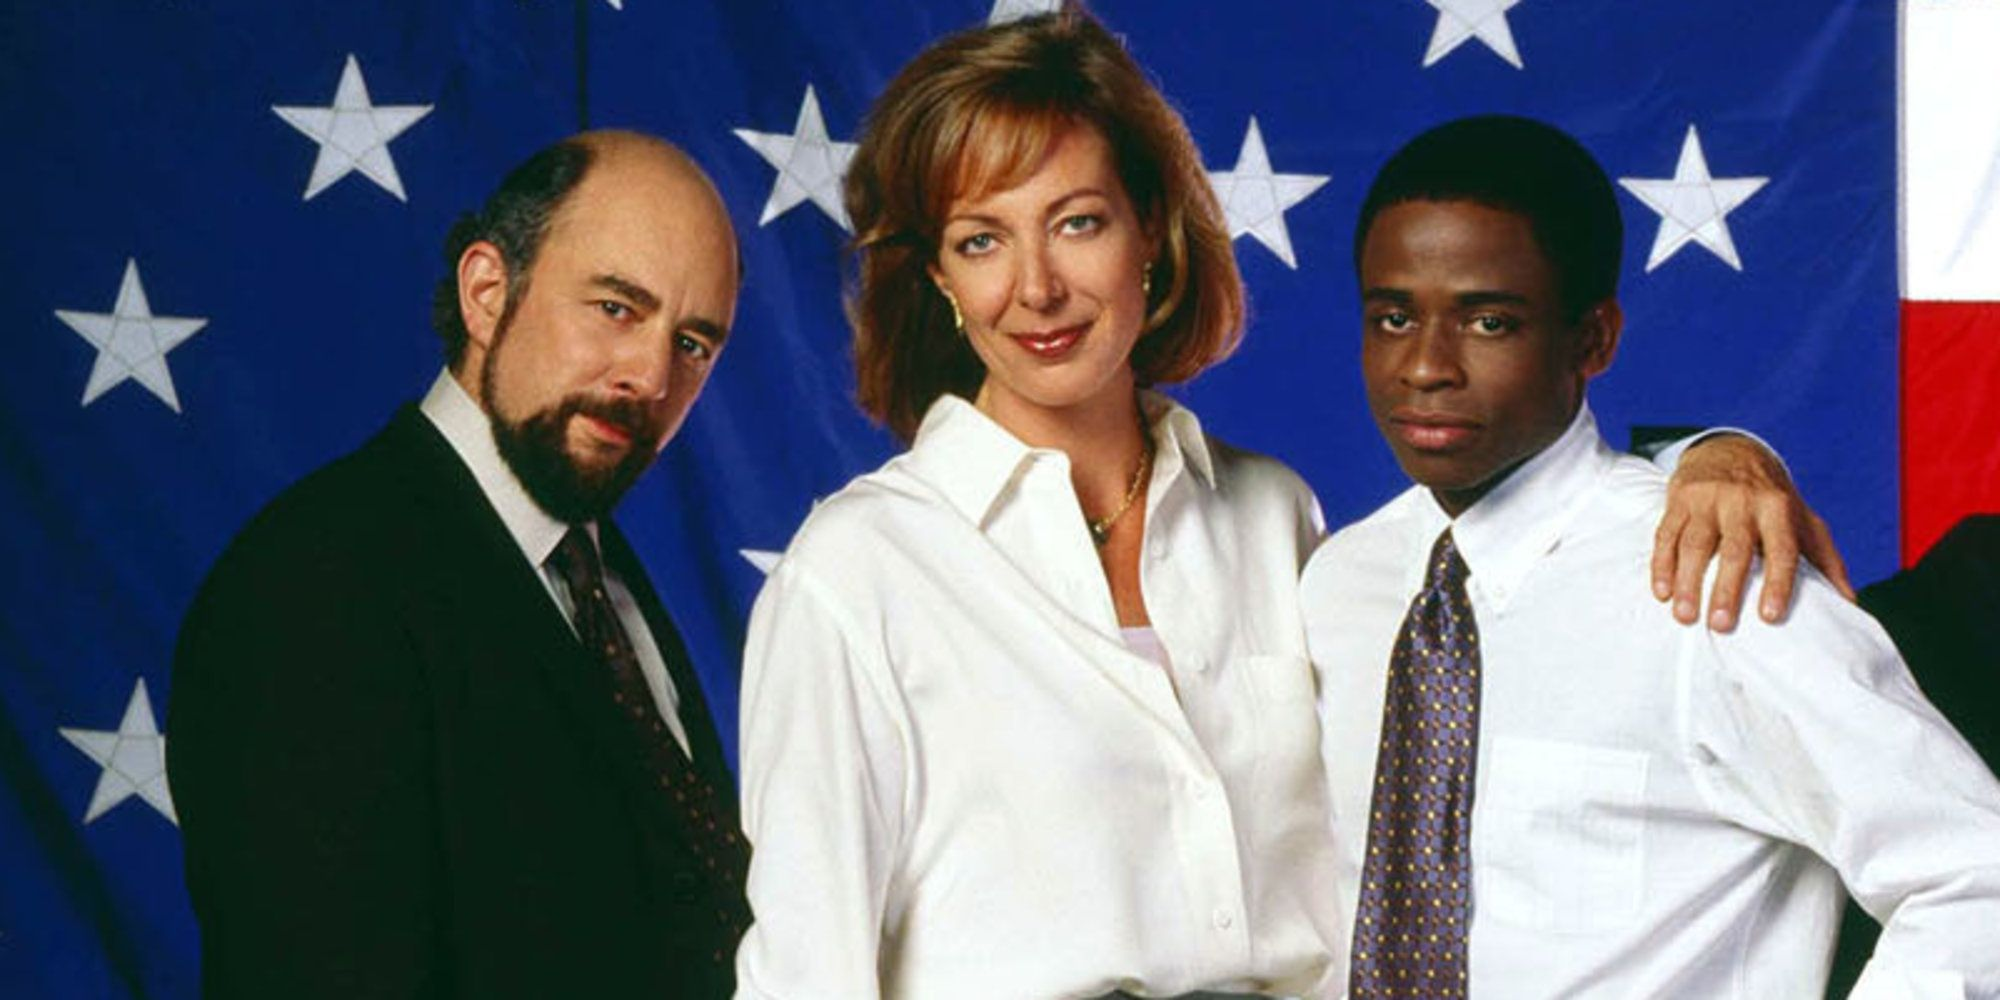 'West Wing' Cast Reunites To Campaign For Hillary Clinton In Ohio